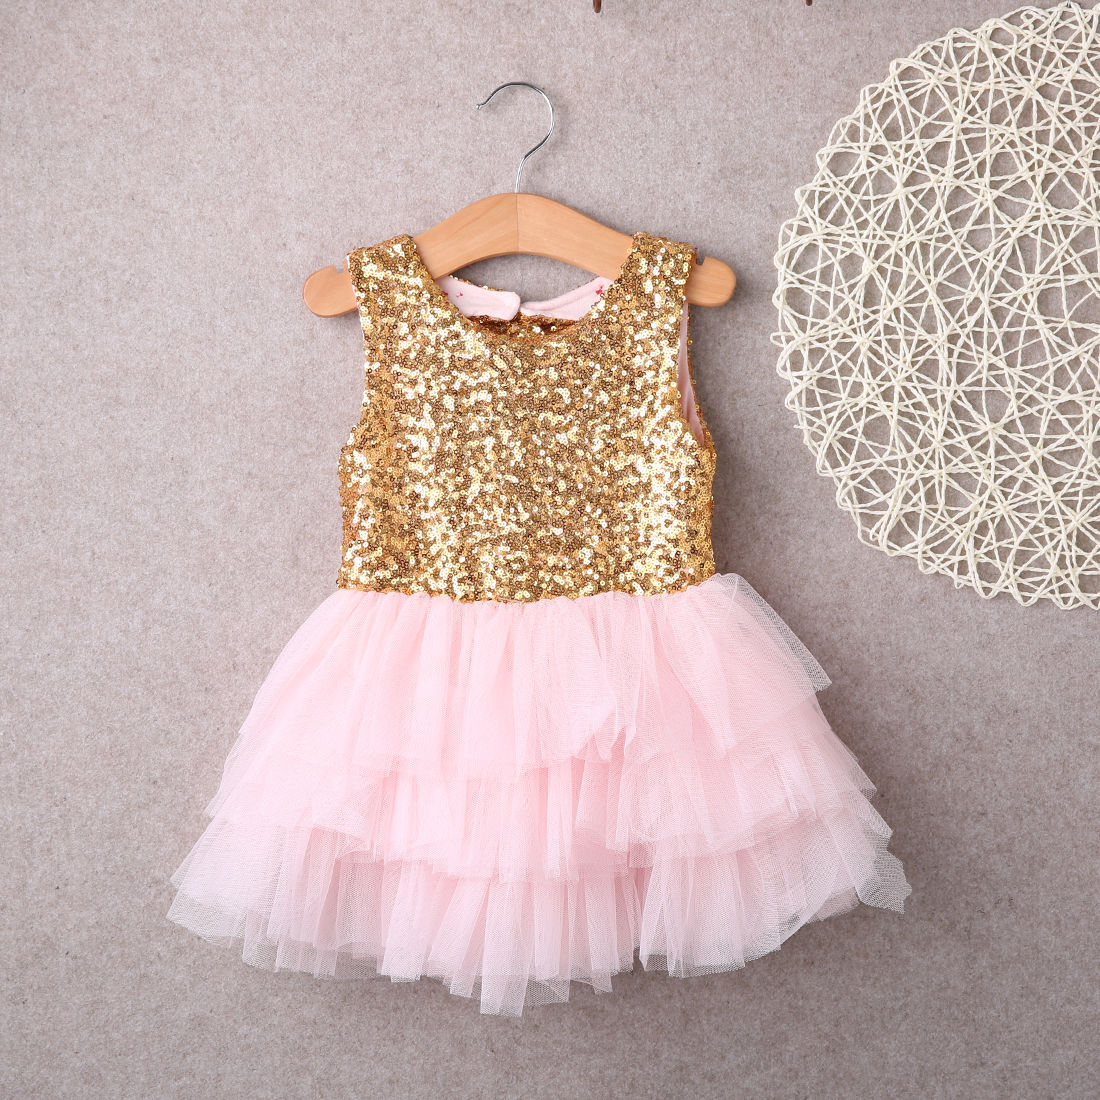 Baby girl pink sequin dress - Dresses 2016 New Baby Children Girl Sequins Backless Bow Gold Lace Tulle Ruffled Party Mini Ball